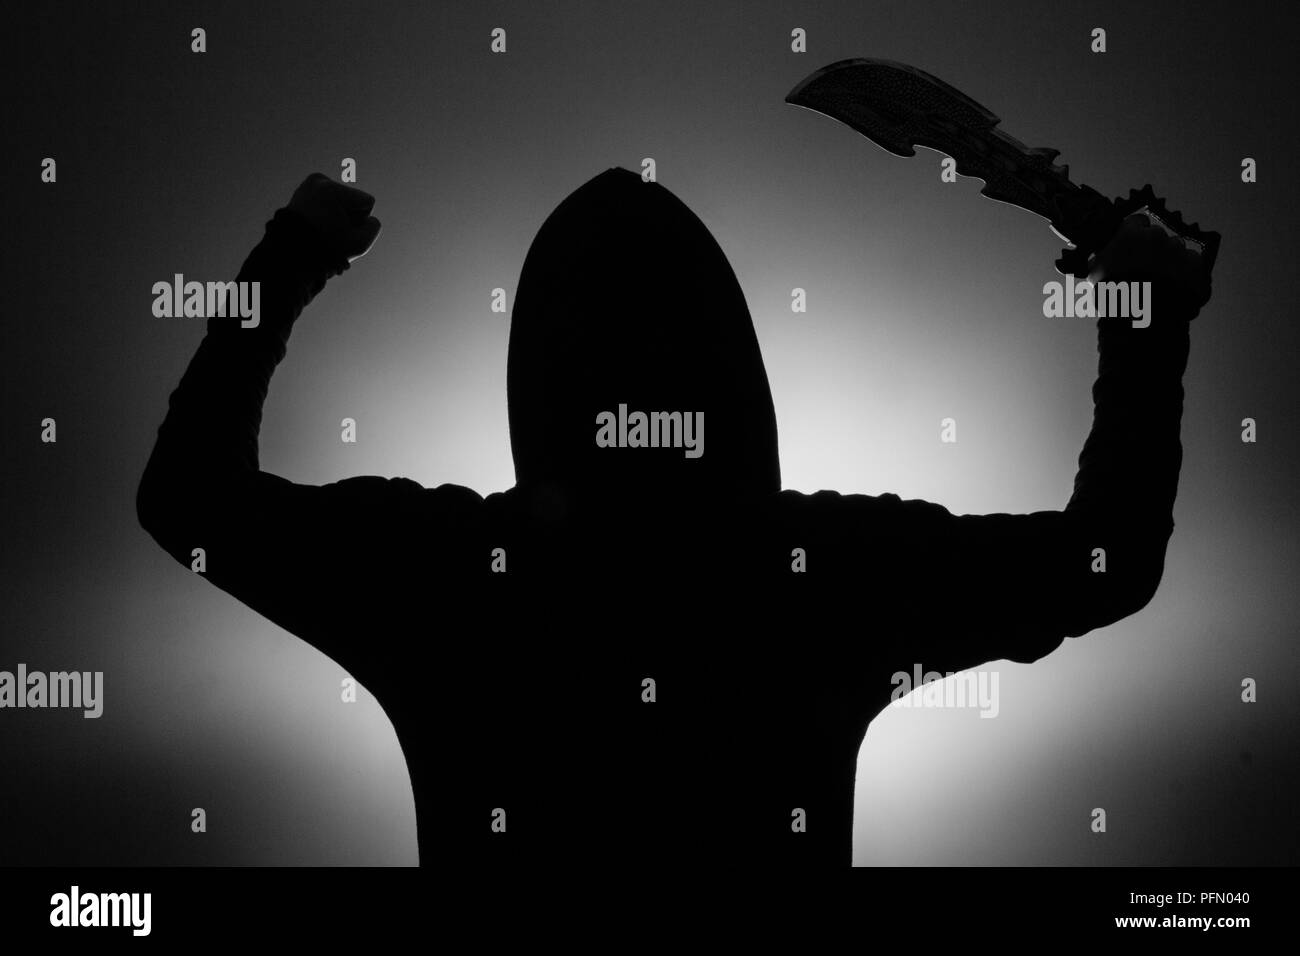 black and white photo: silhouette of a man in a hood holding a fantasy sword in a hang raised in the air - Stock Image